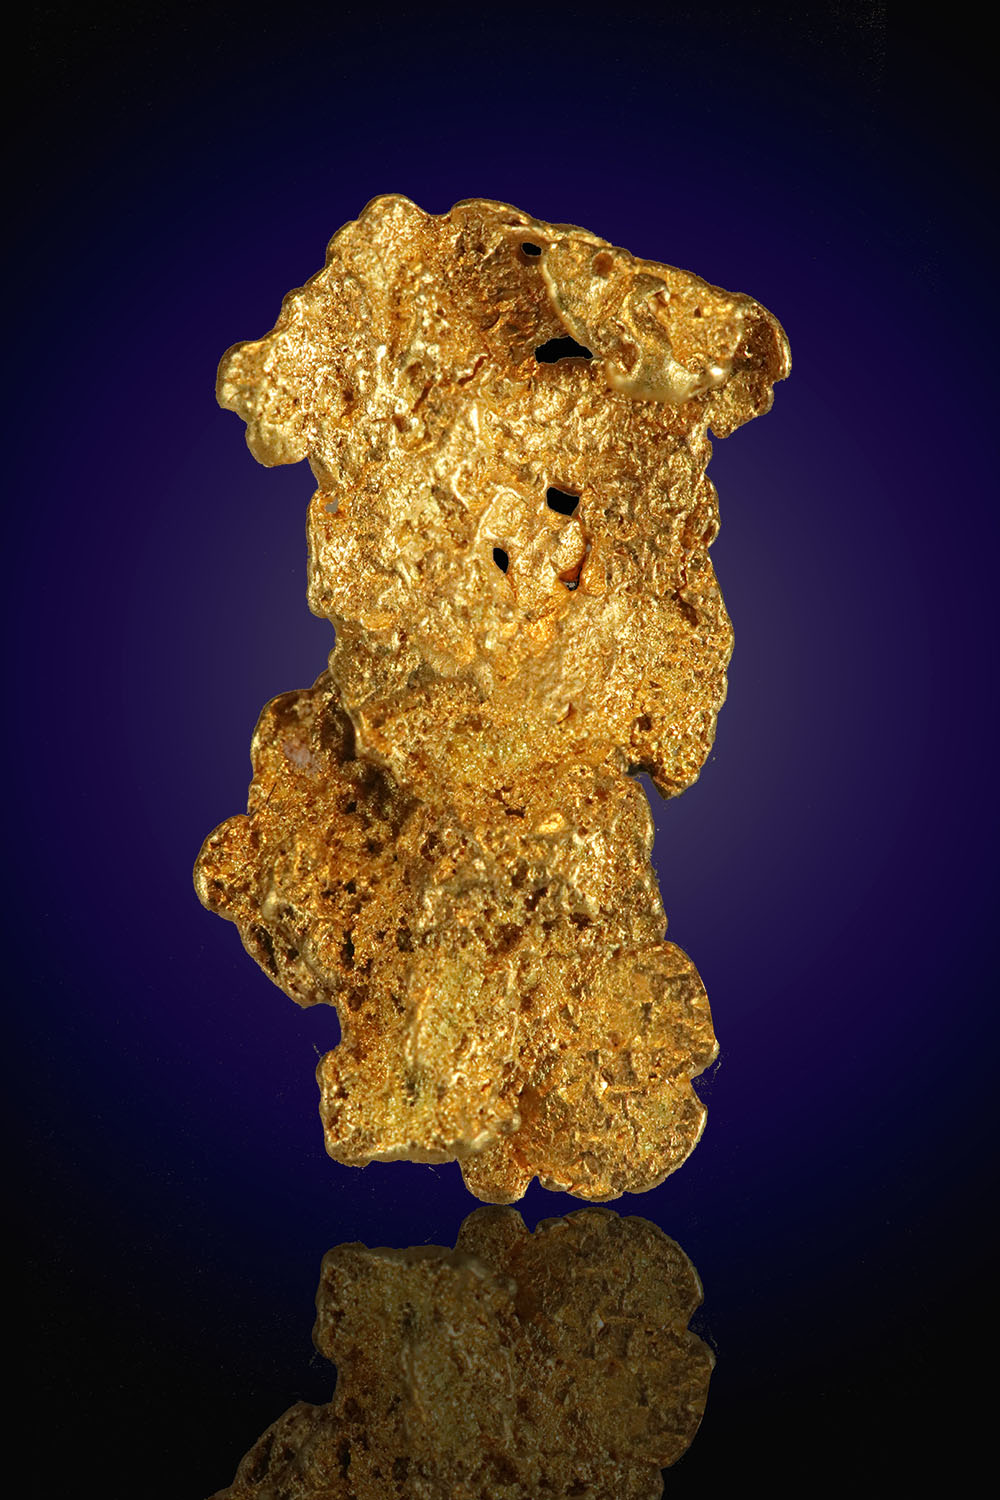 Thin Leaf Gold Nugget From Nevada - Eugene Mountains